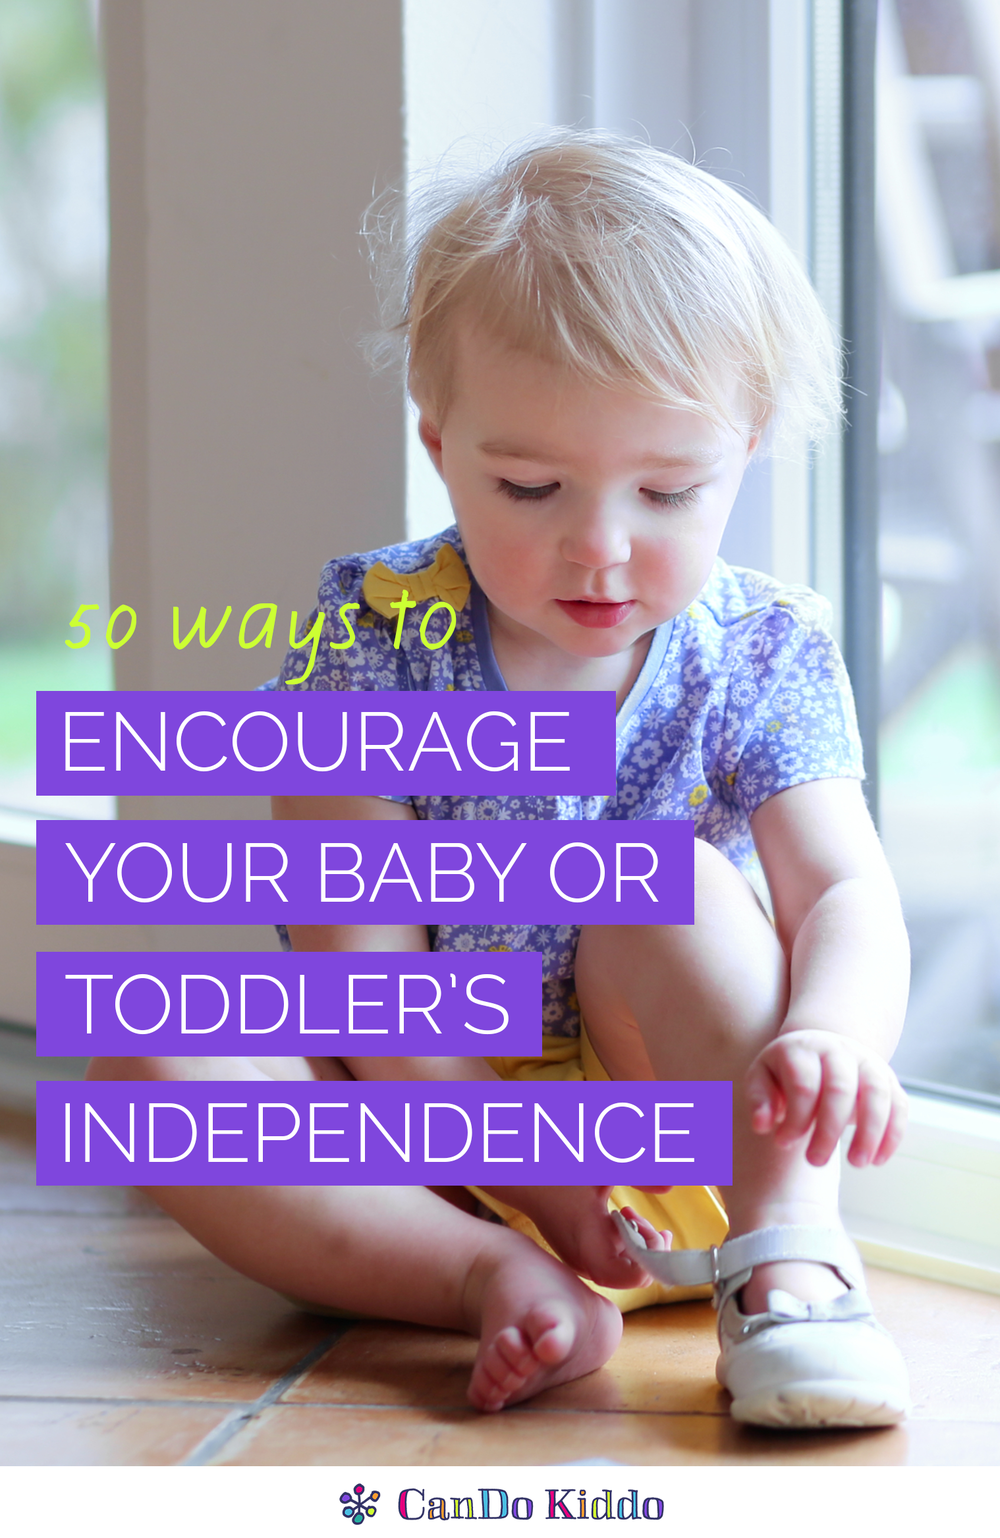 50 ways to promote baby and toddler independence — cando kiddo